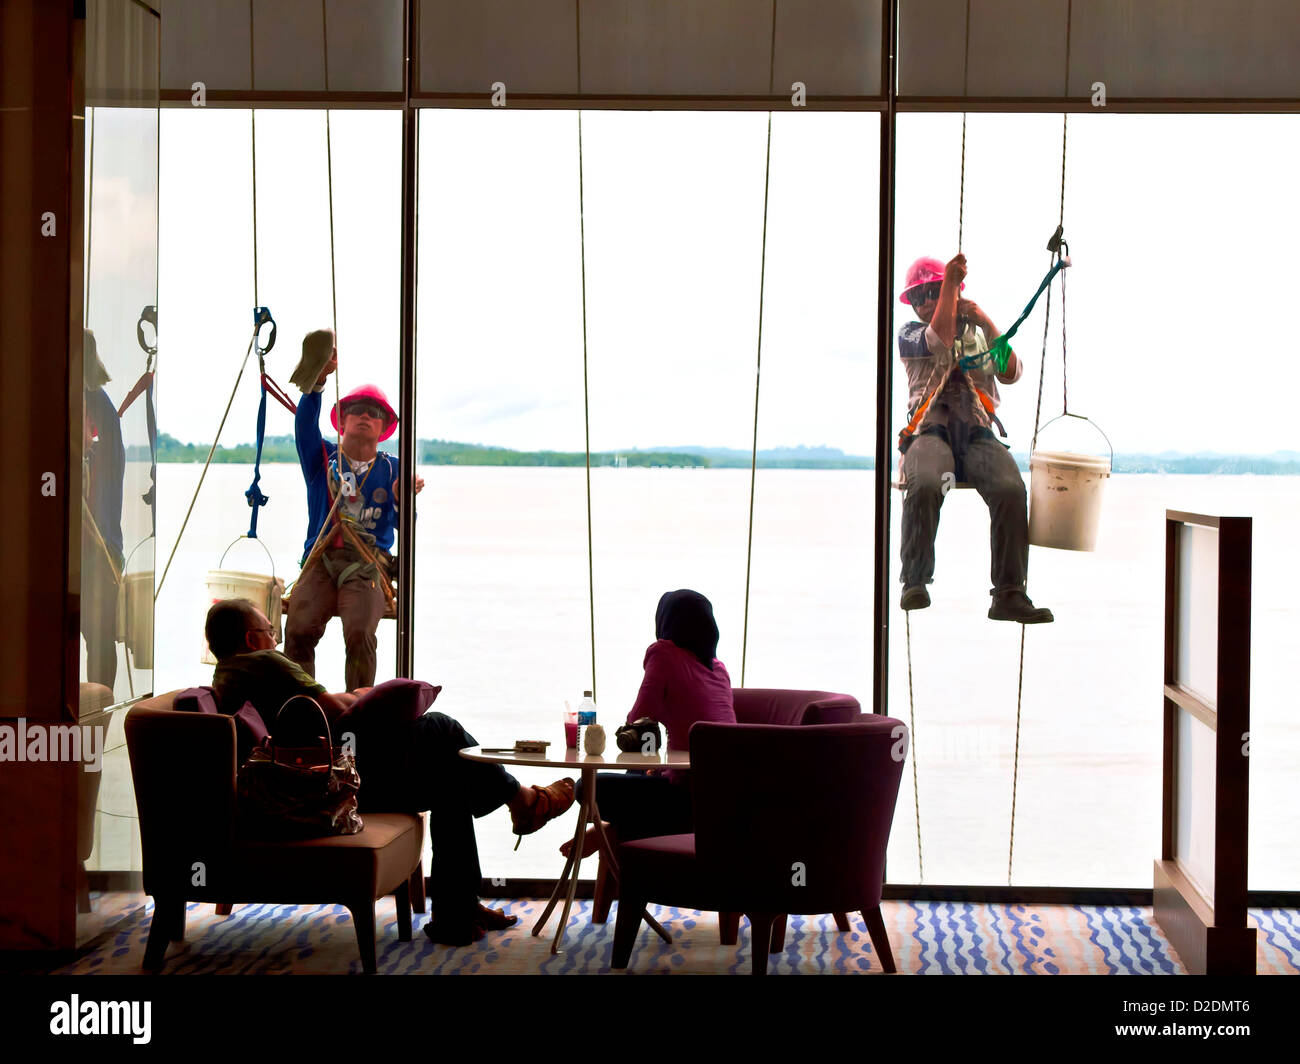 Malaysia, Borneo, Kota Kinabalu, Four Points Hotel, People in a sitting room, Window cleaners in the background - Stock Image